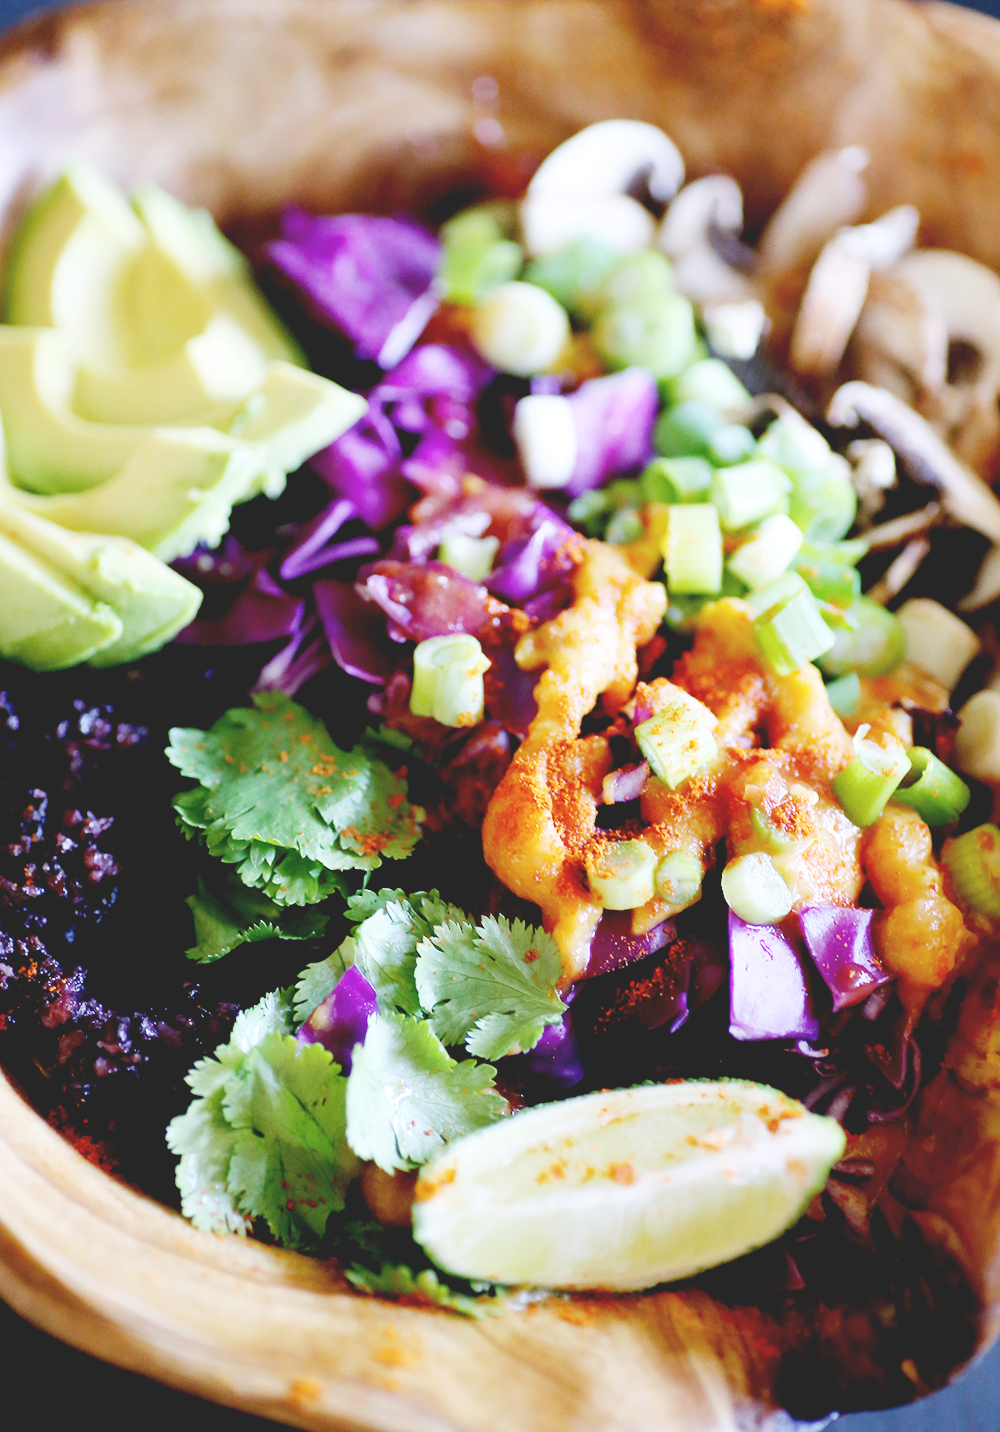 Healthy and delicious buddha bowl, Mexican style. Fresh, filling and super easy to make. With a cheese queso sauce, all vegan and gluten-free.